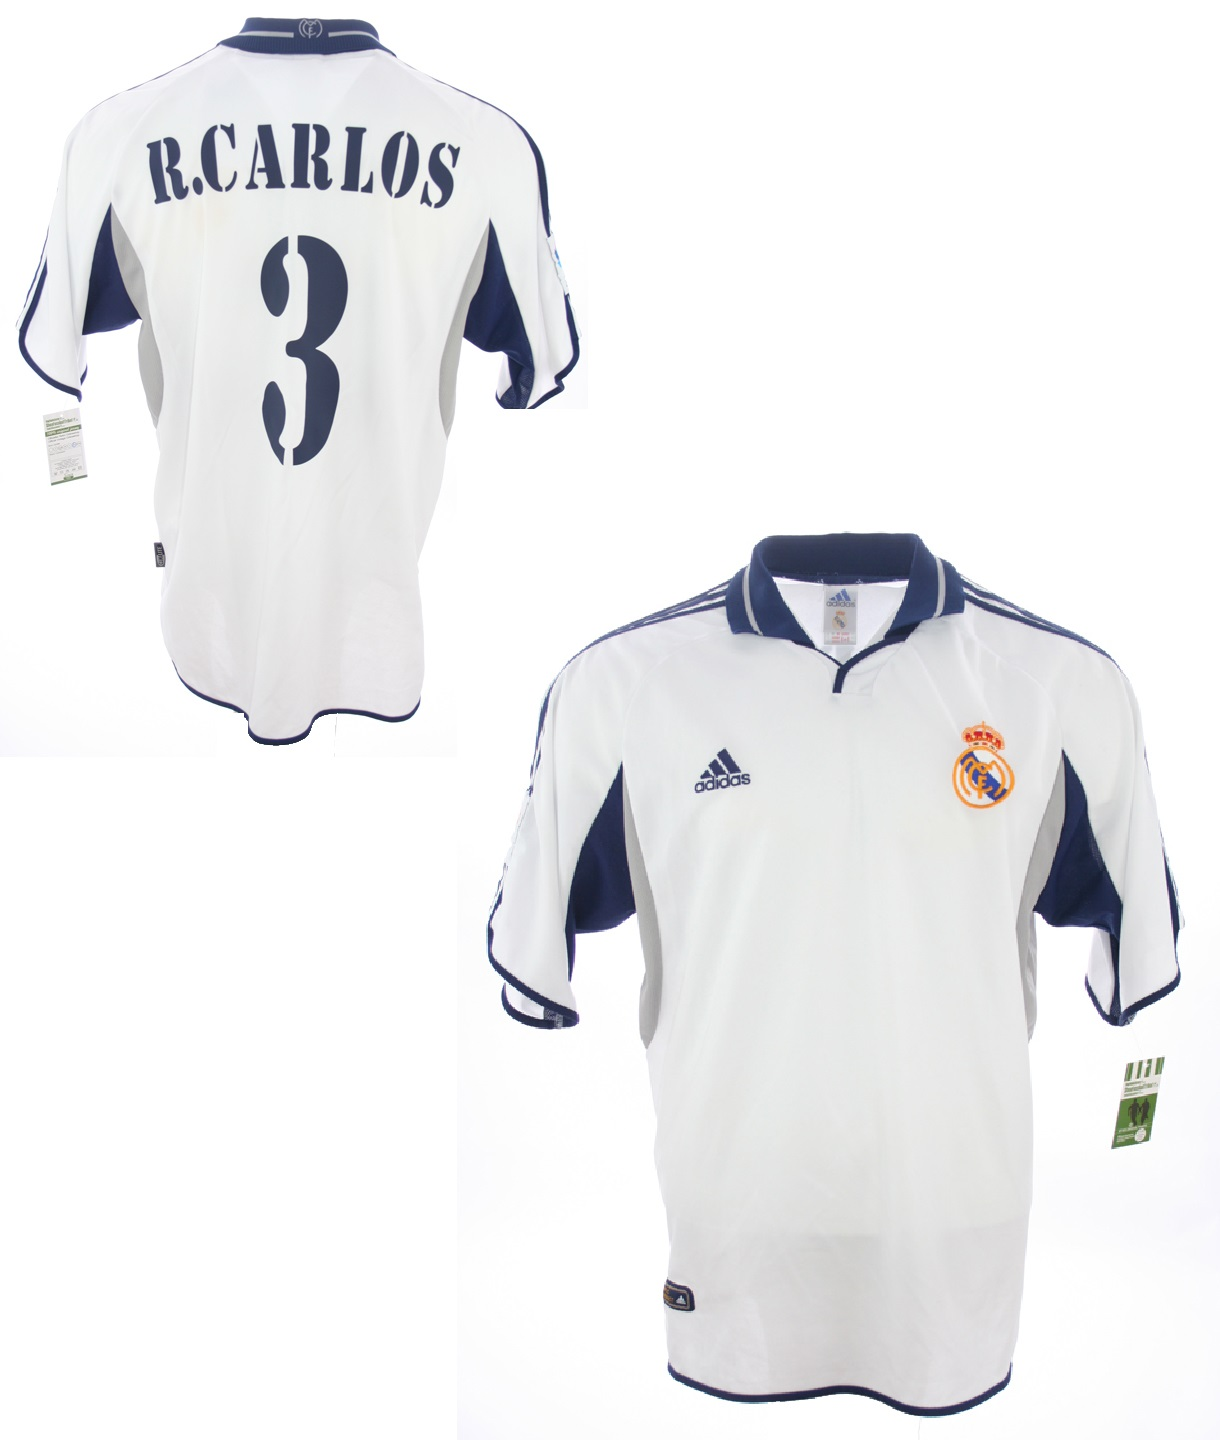 new product ddde7 474b6 Adidas Real Madrid jersey 3 Roberto Carlos 2000/01 without ...